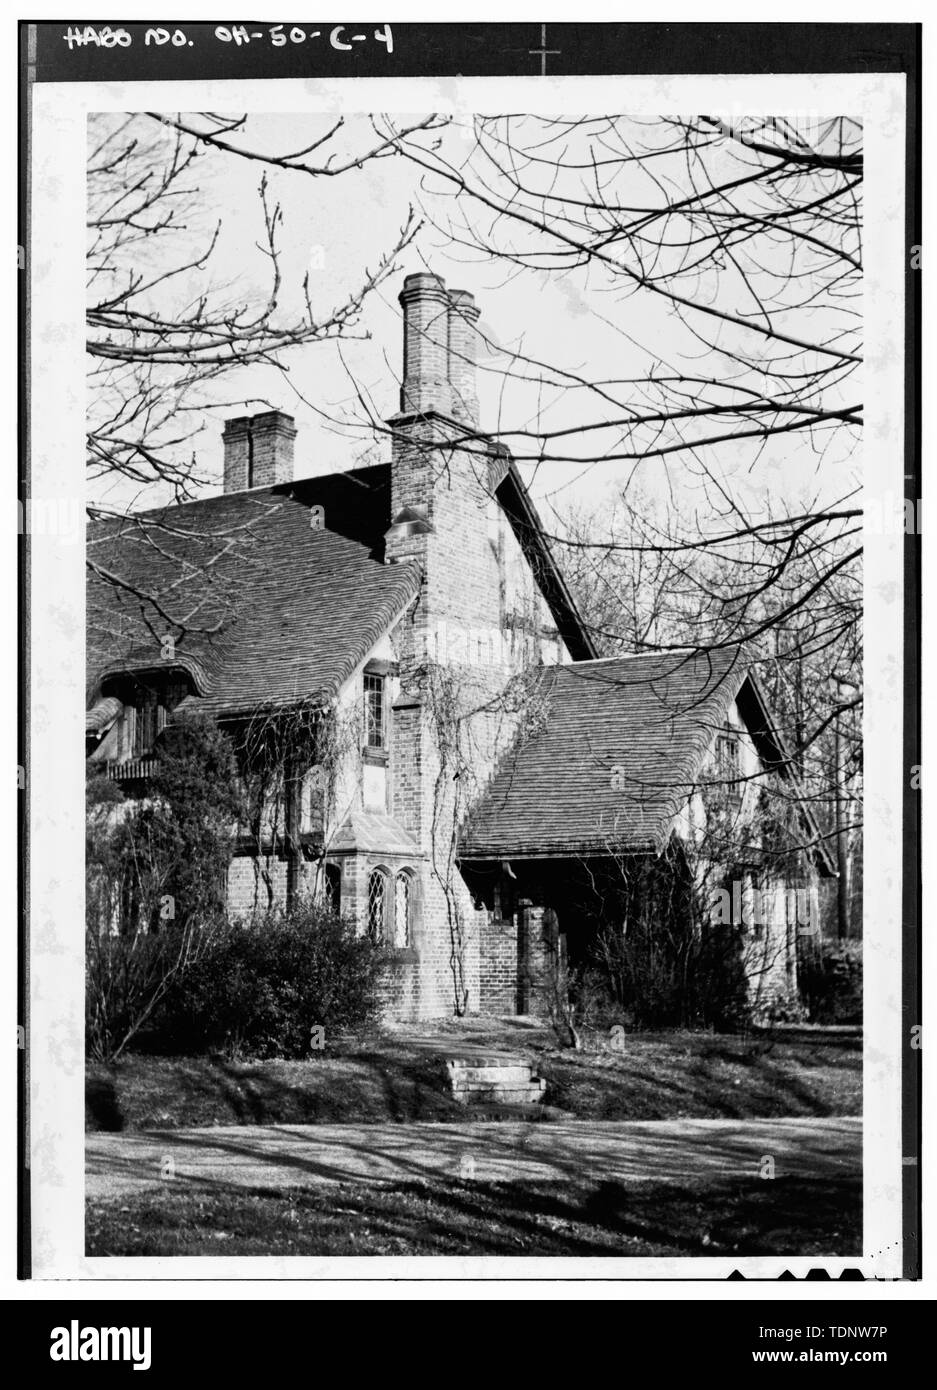 Photocopy of January, 1942 photograph taken by and provided courtesy of Representative John F. Seiberling GATE HOUSE - Stan Hywet Hall, Gate House and Entrance Gates, 714 North Portage Path, Akron, Summit County, OH Stock Photo